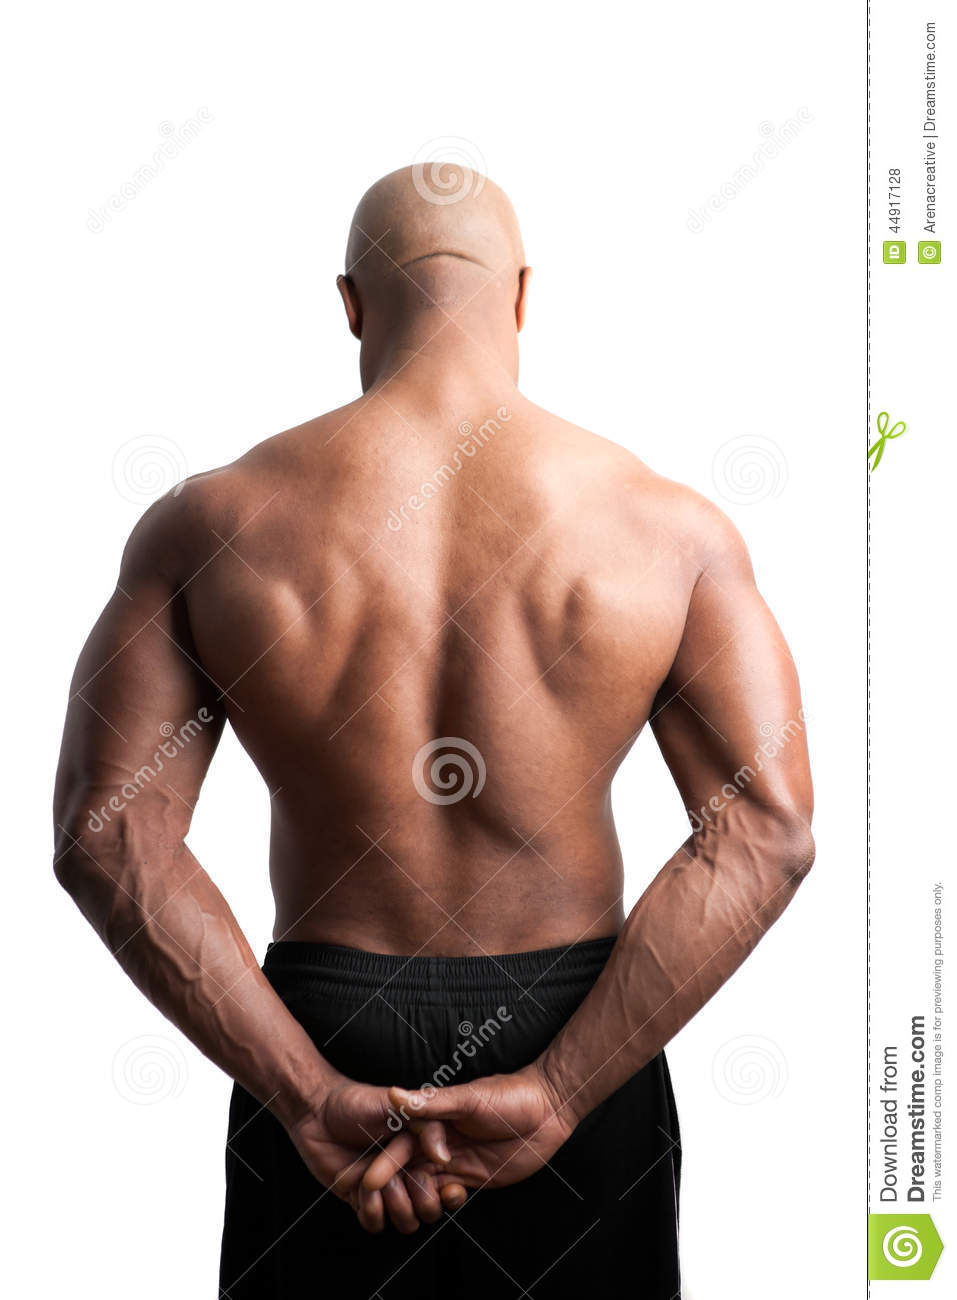 Related Keywords & Suggestions for muscular shoulders